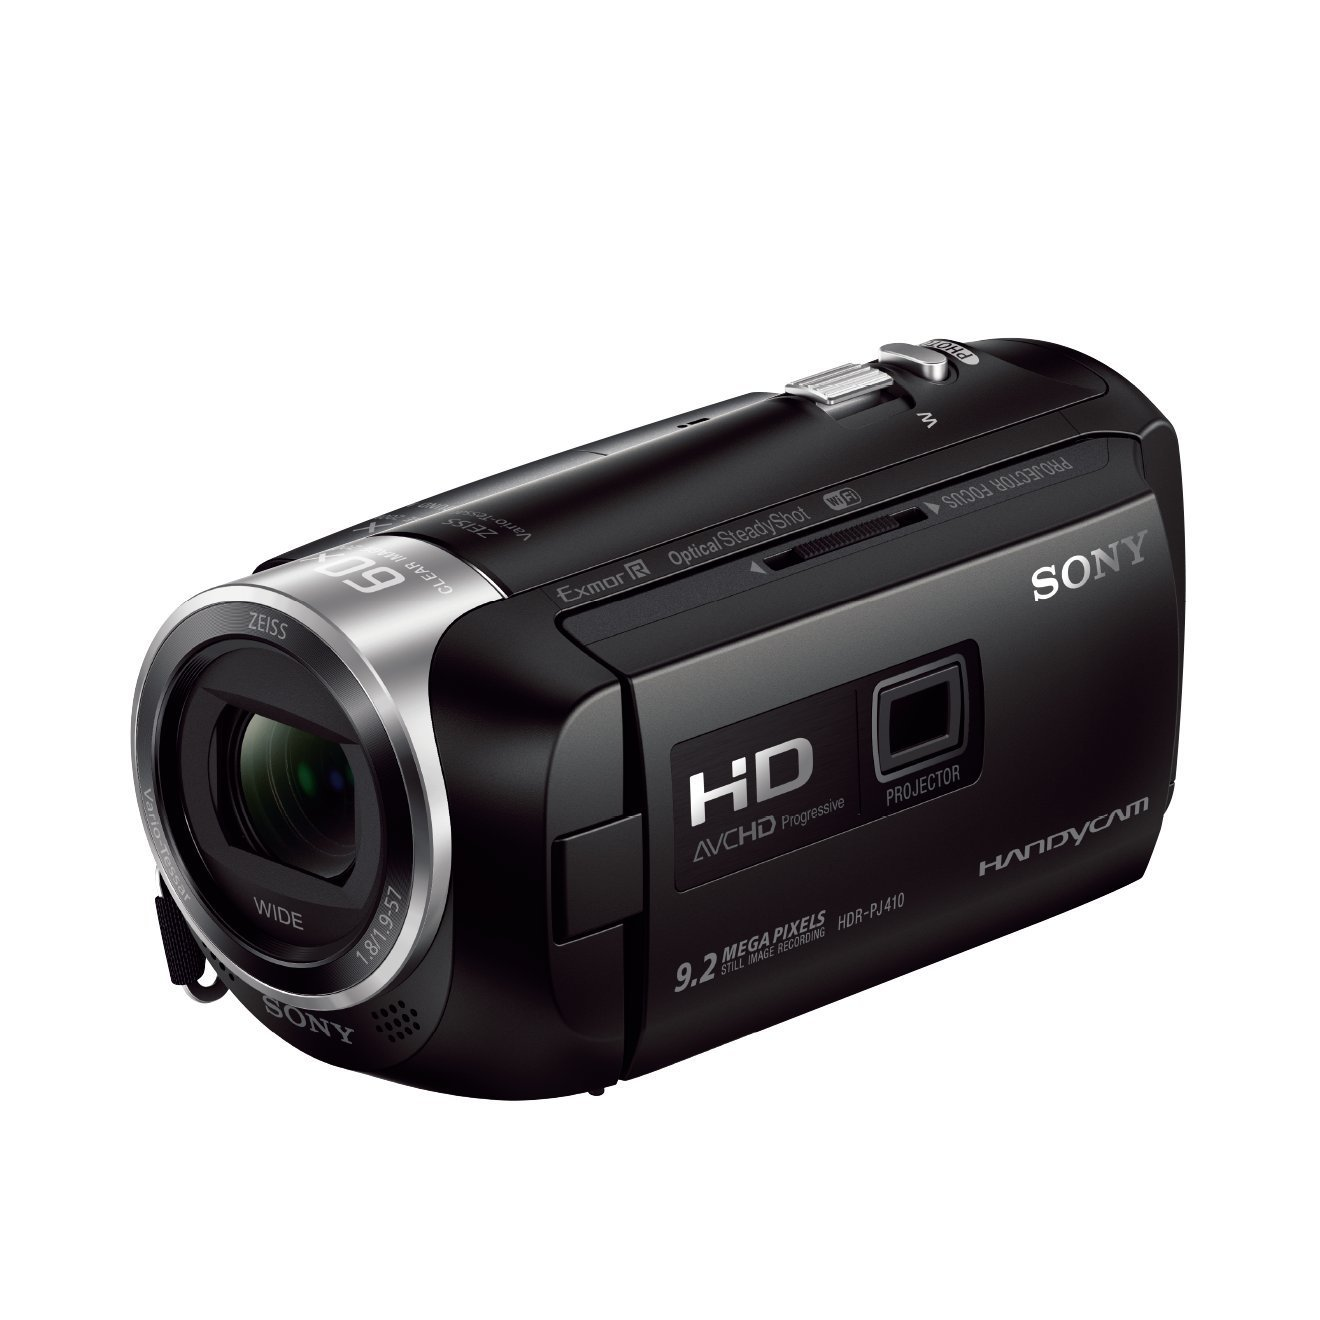 "Sony HDR-PJ410 - Videocámara (pantalla de 2.7"", zoom óptico 30x, WiFi, NFC), negro"